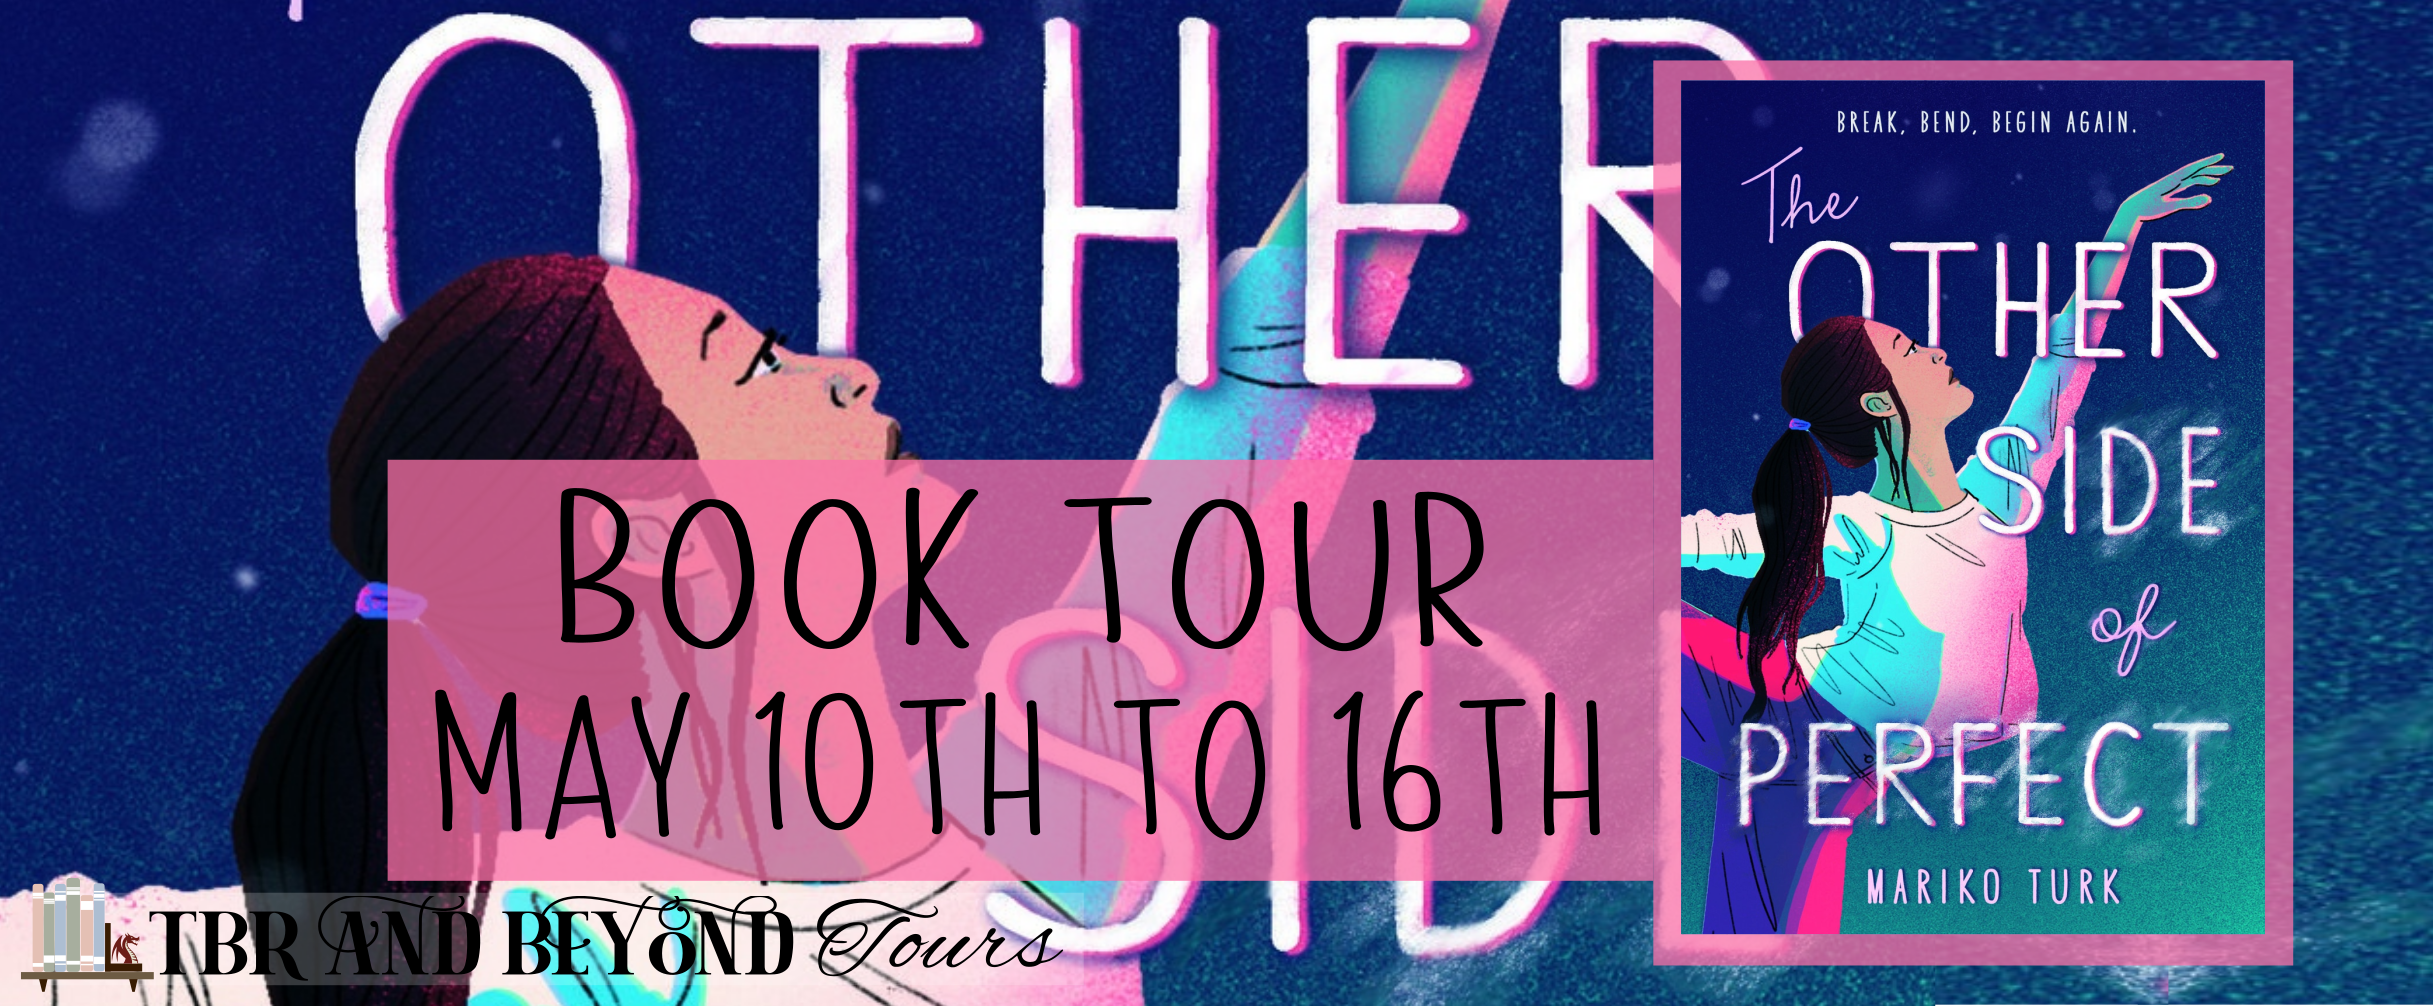 Blog Tour: The Other Side of Perfect by Mariko Turk (Spotlight!)